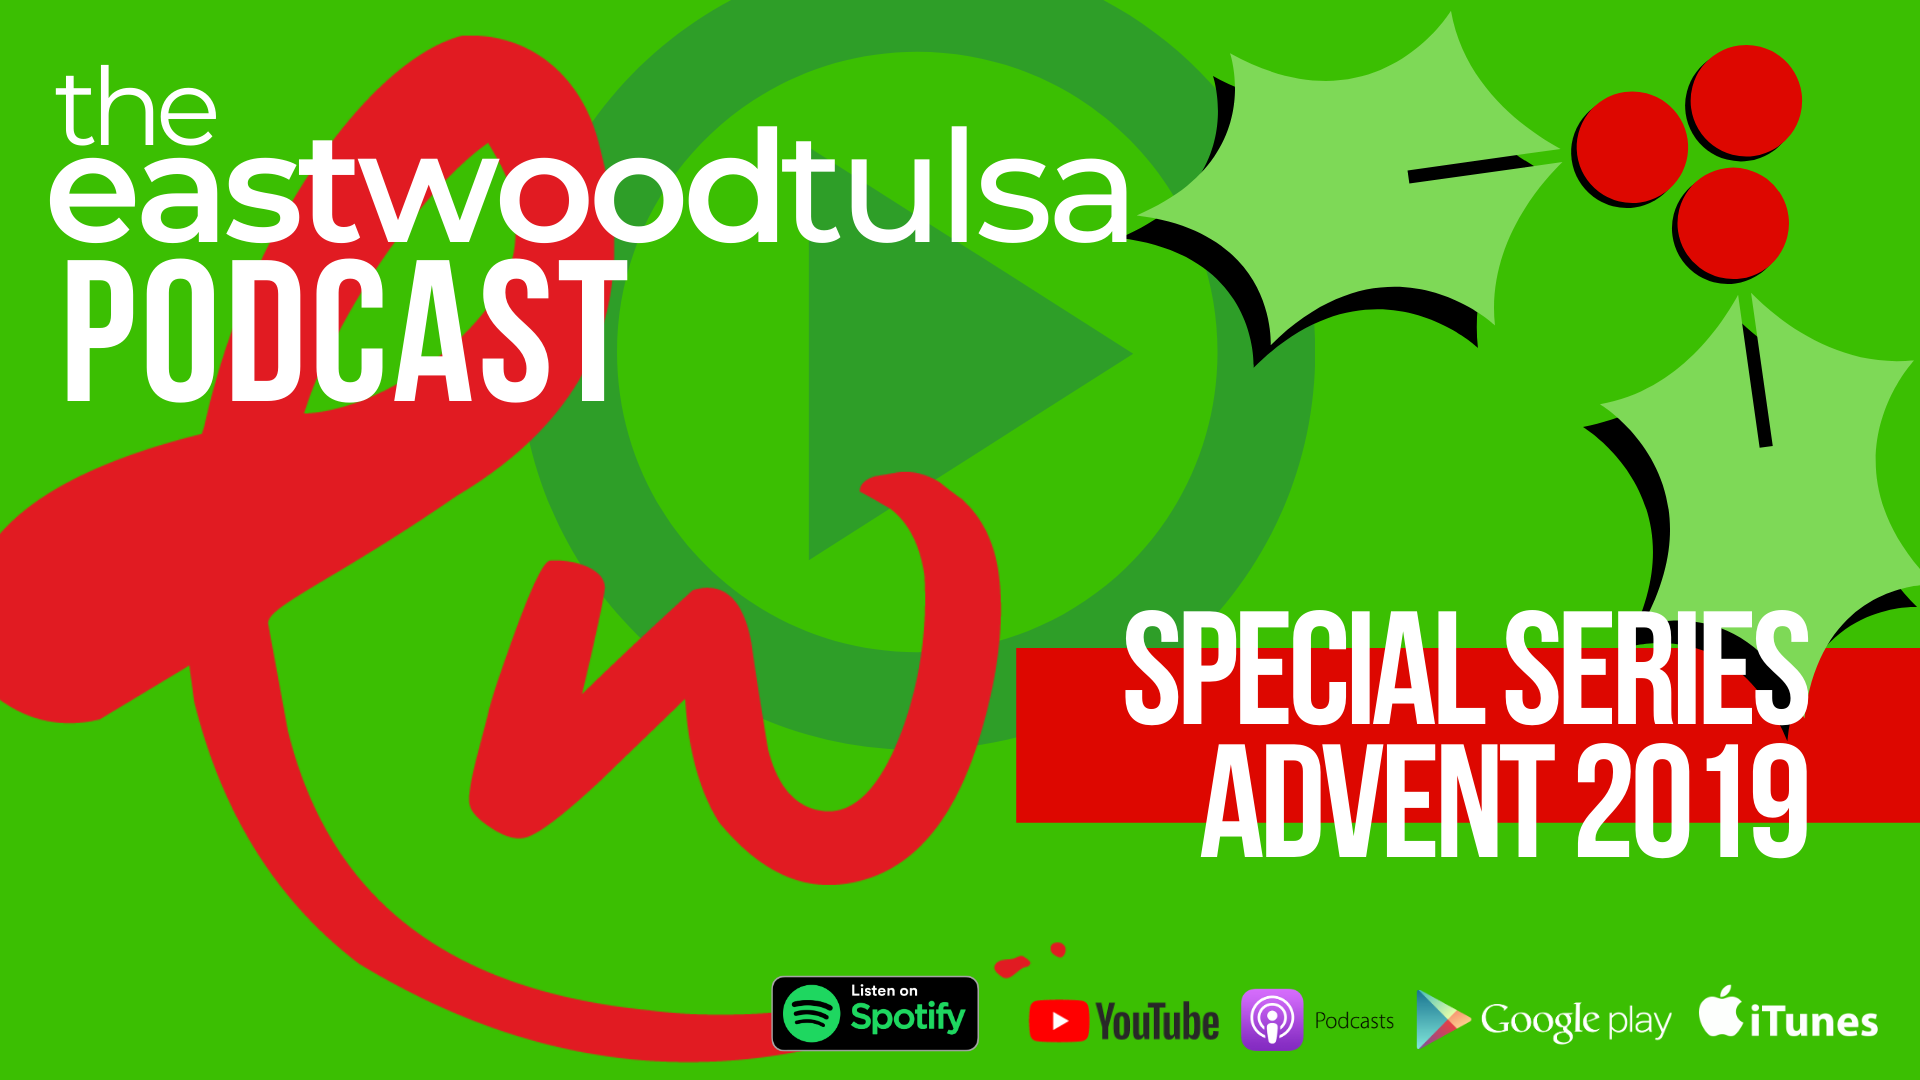 Podcast Special Series Advent 2019